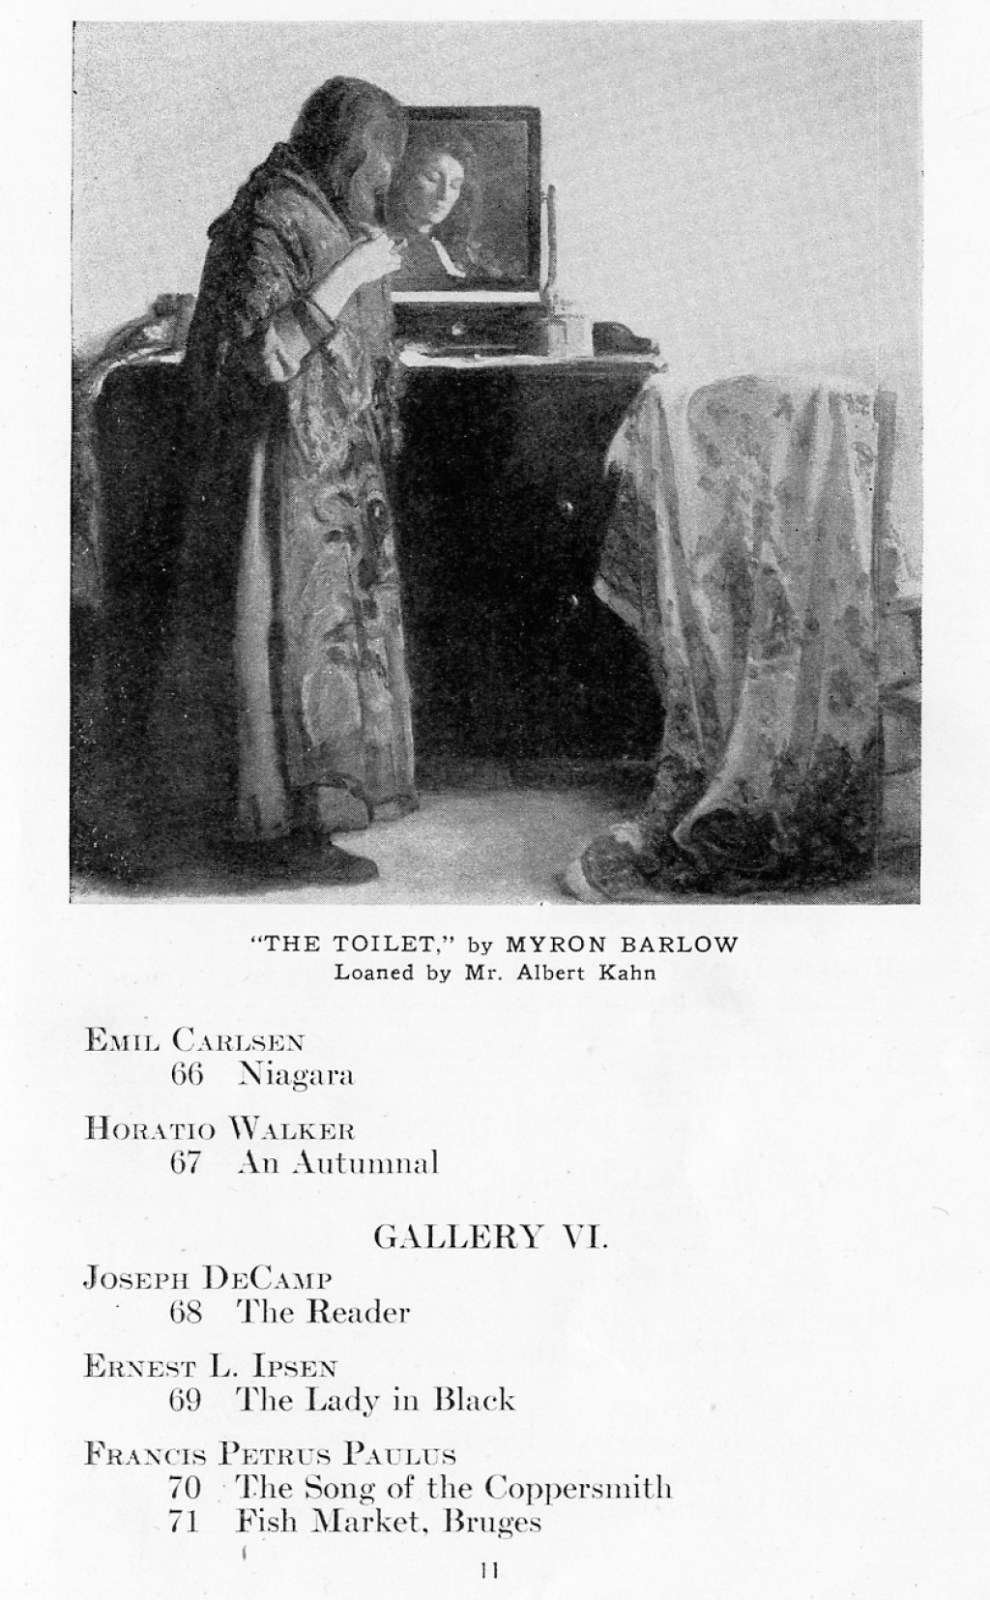 """1918 Detroit Museum of Art, Detroit, MI, """"Fourth Annual Exhibition of Selected Paintings by American Artists"""", April 9 - May 30."""